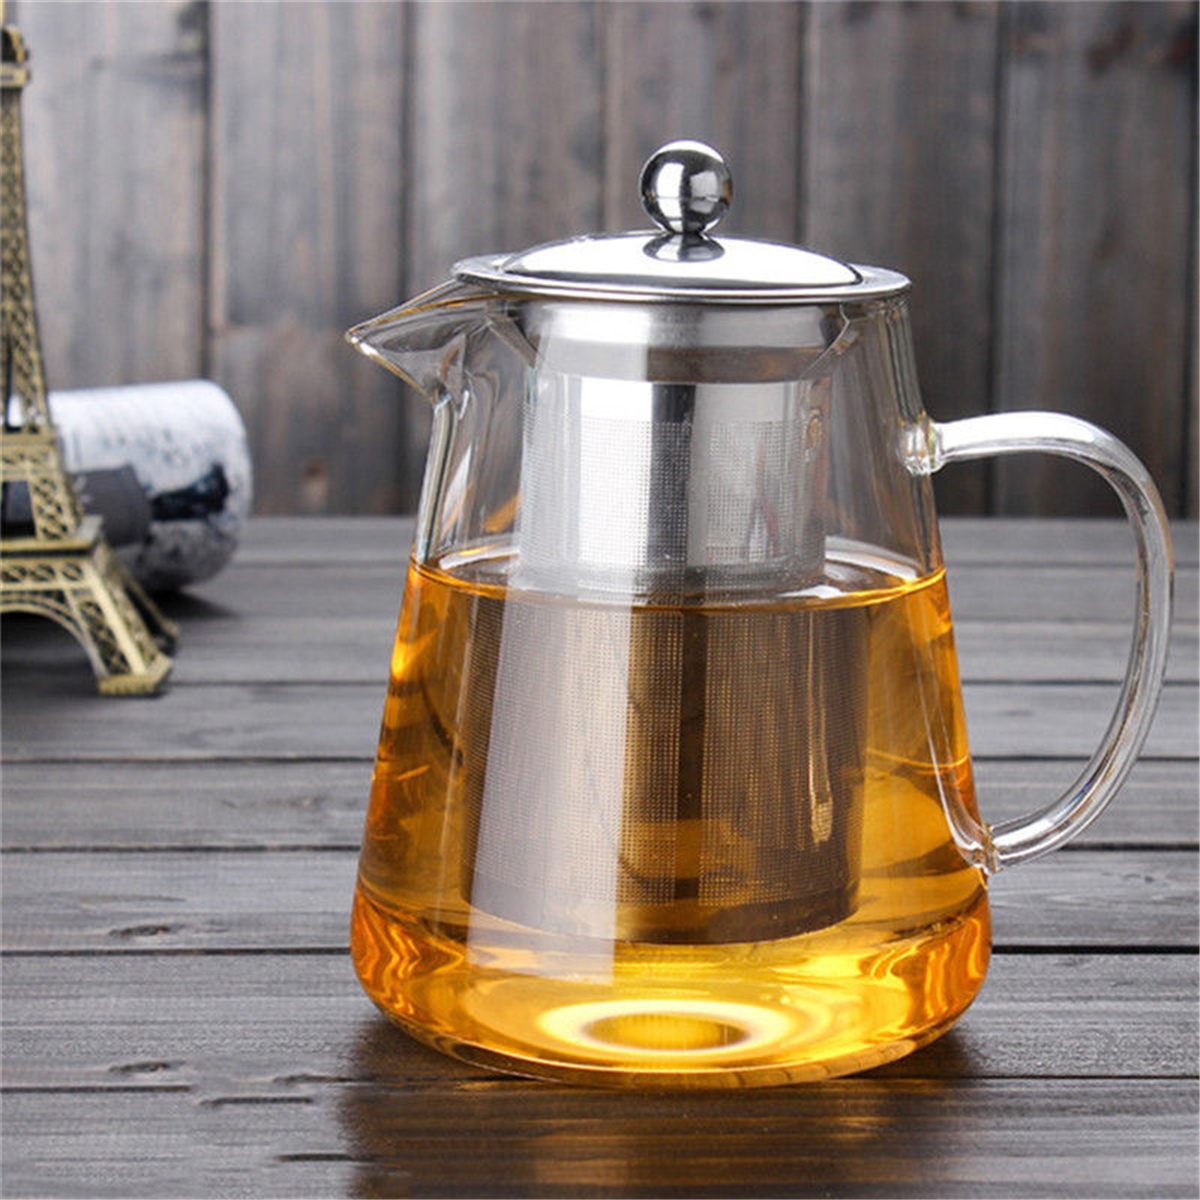 450ml Heat Resistant Clear Glass Tea Pot With Infuser Coffee Tea Leaf Herbal Pot